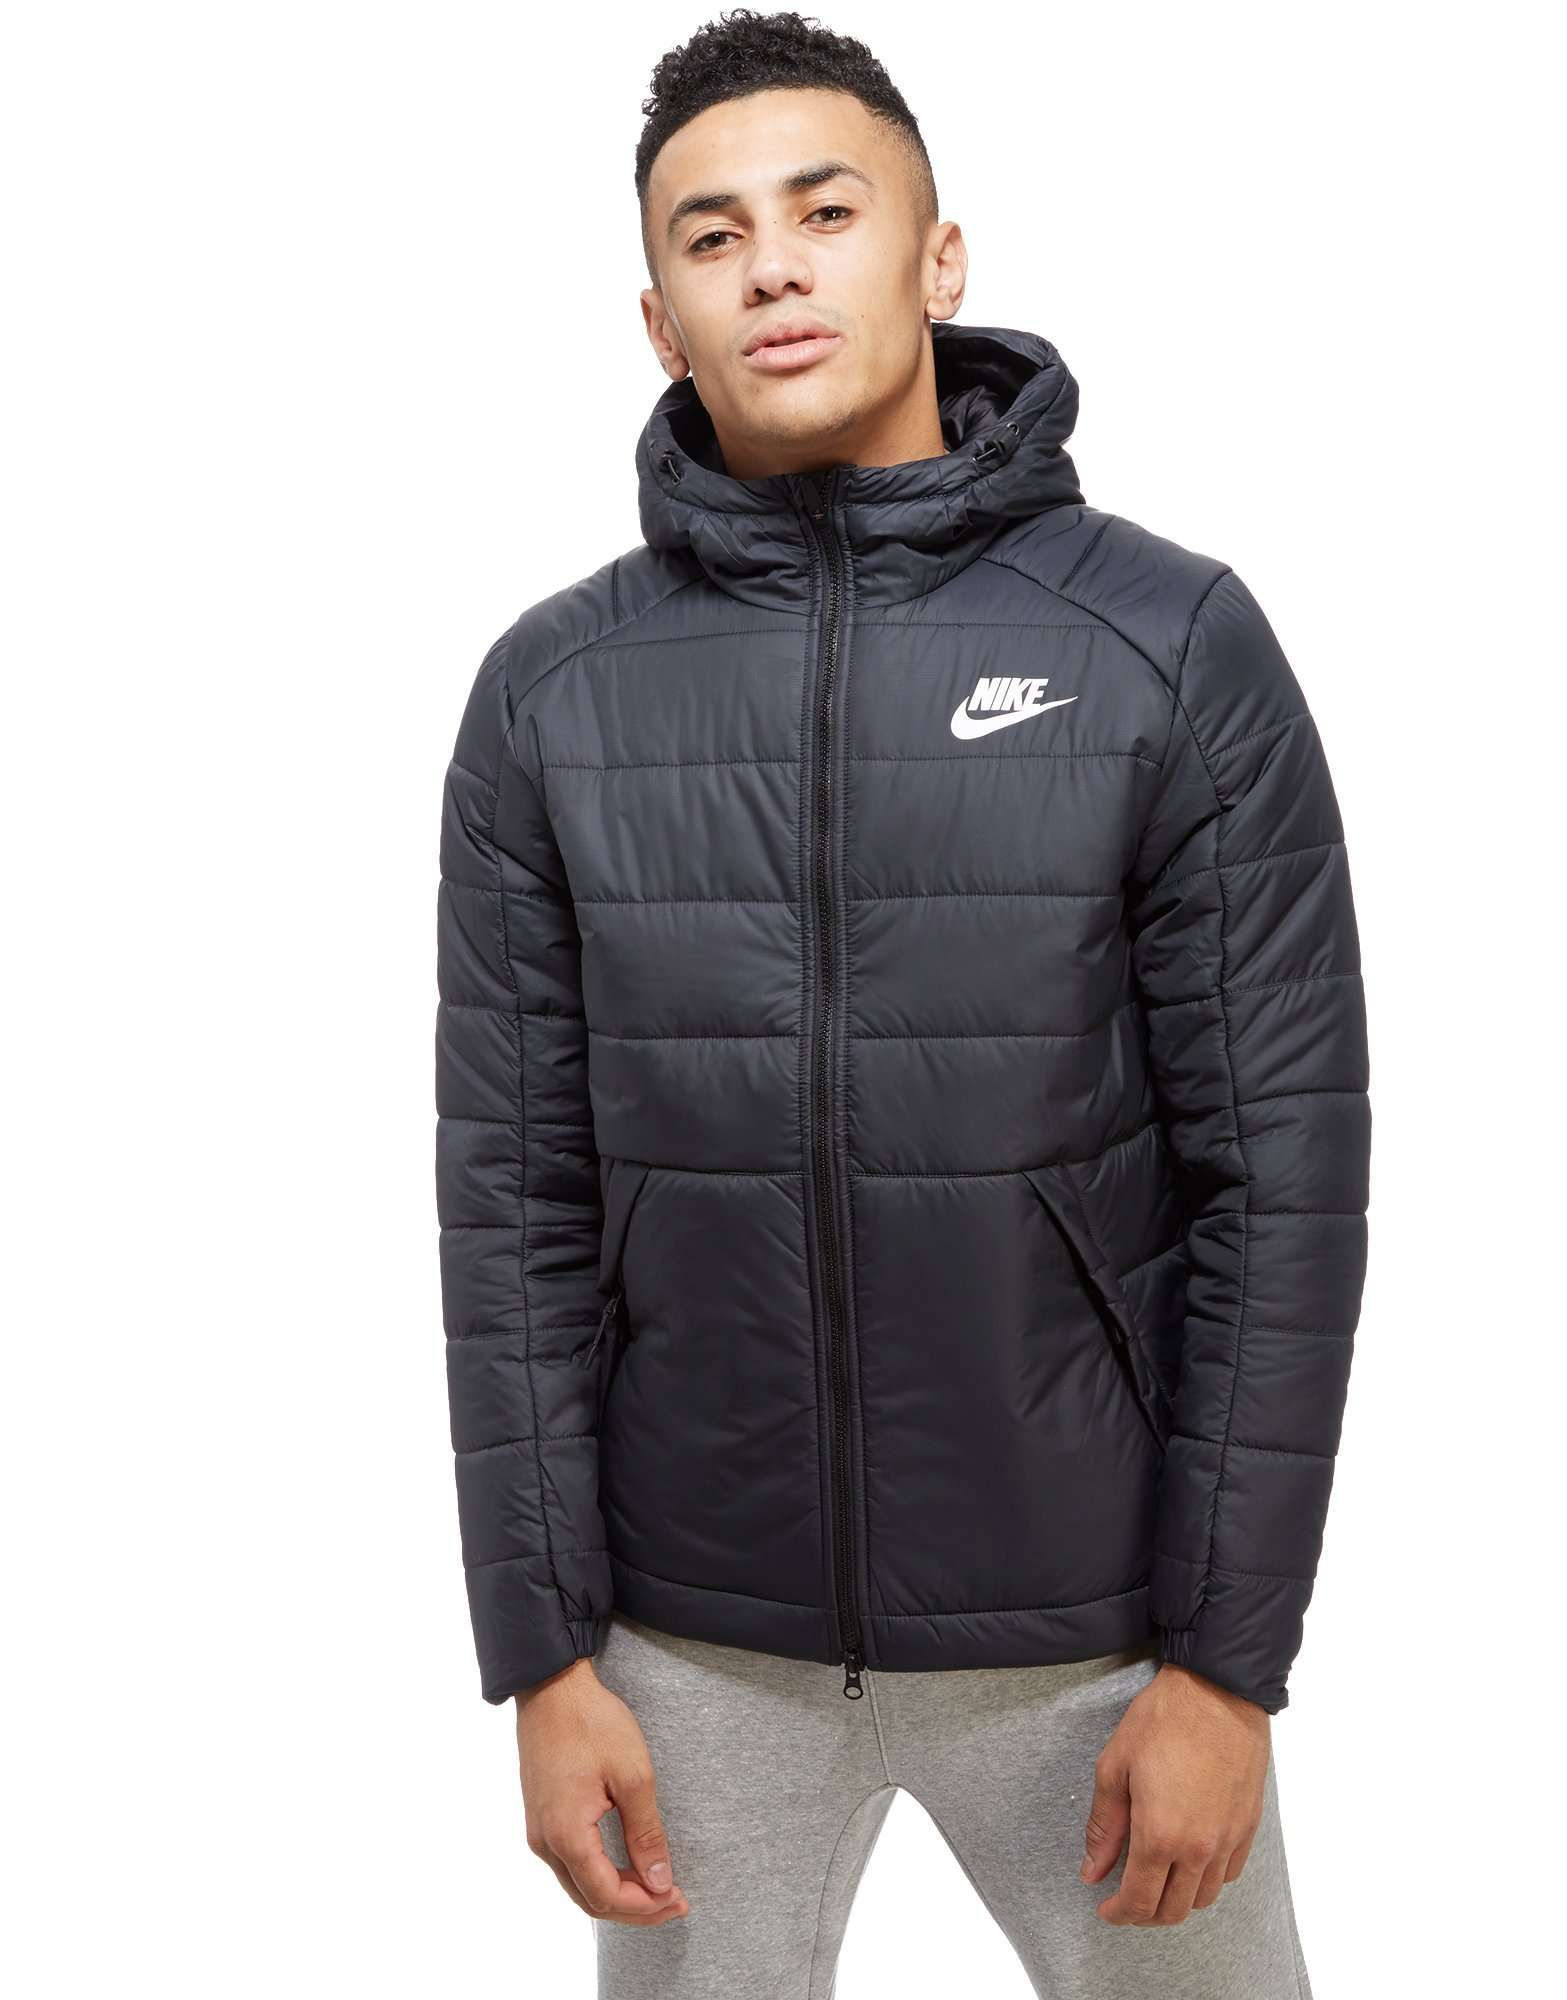 Nike With Jd Online Jacket For Bubble Shop Zq7SpZ